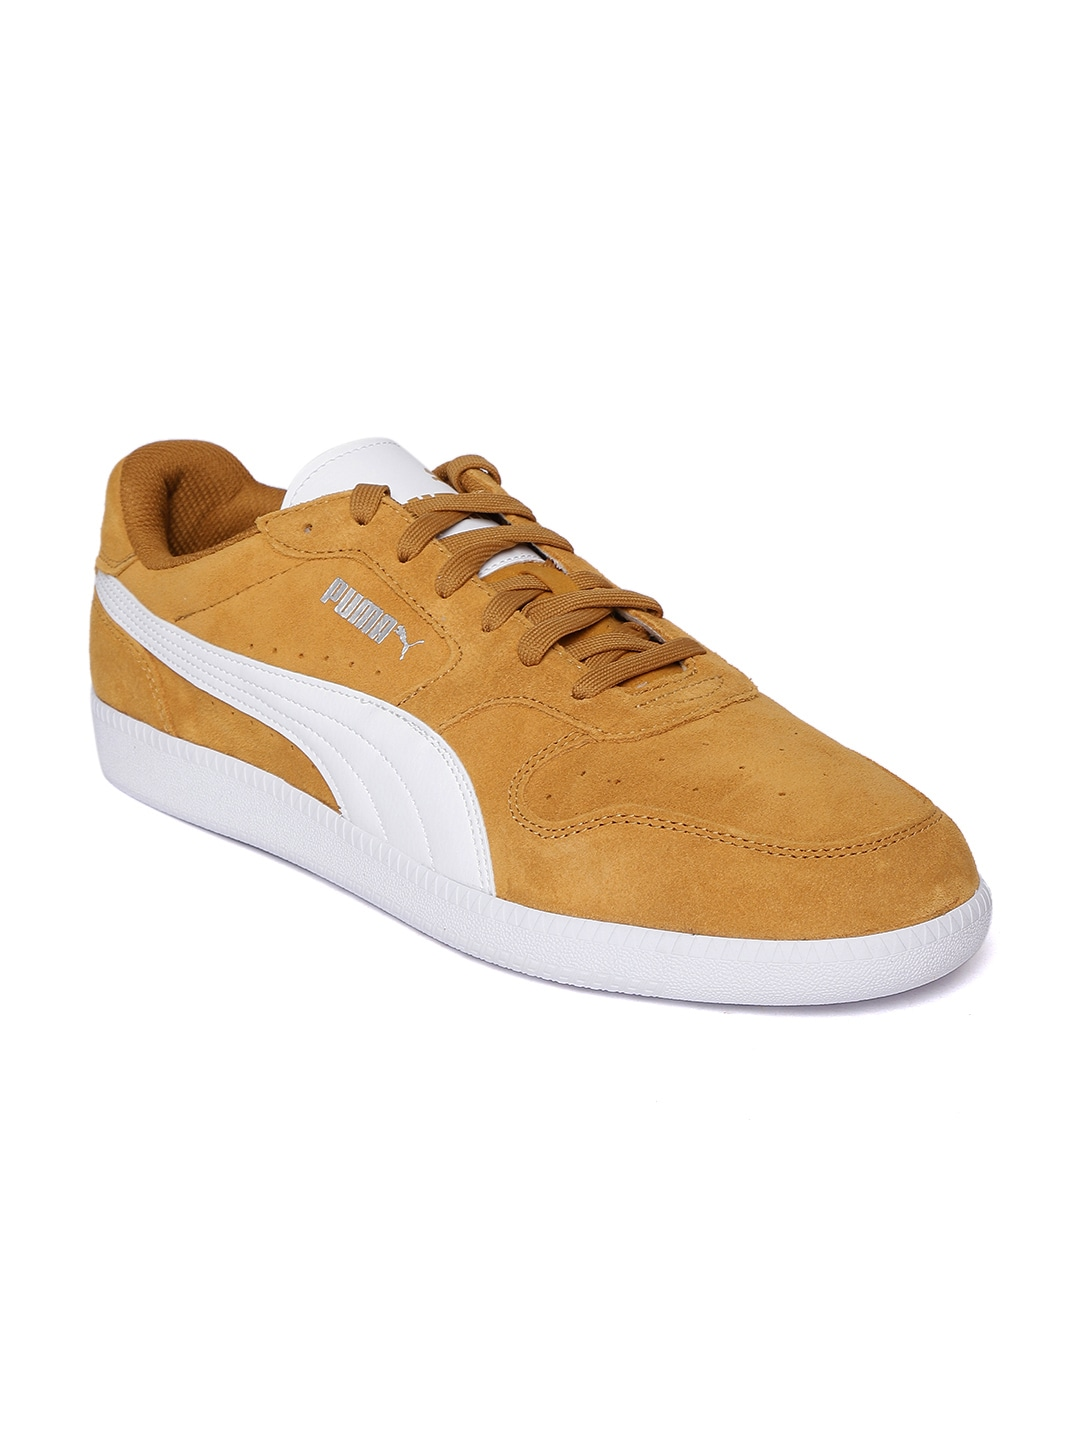 b81b65f8f4a Mustard Shoes- Buy Mustard Shoes online in India